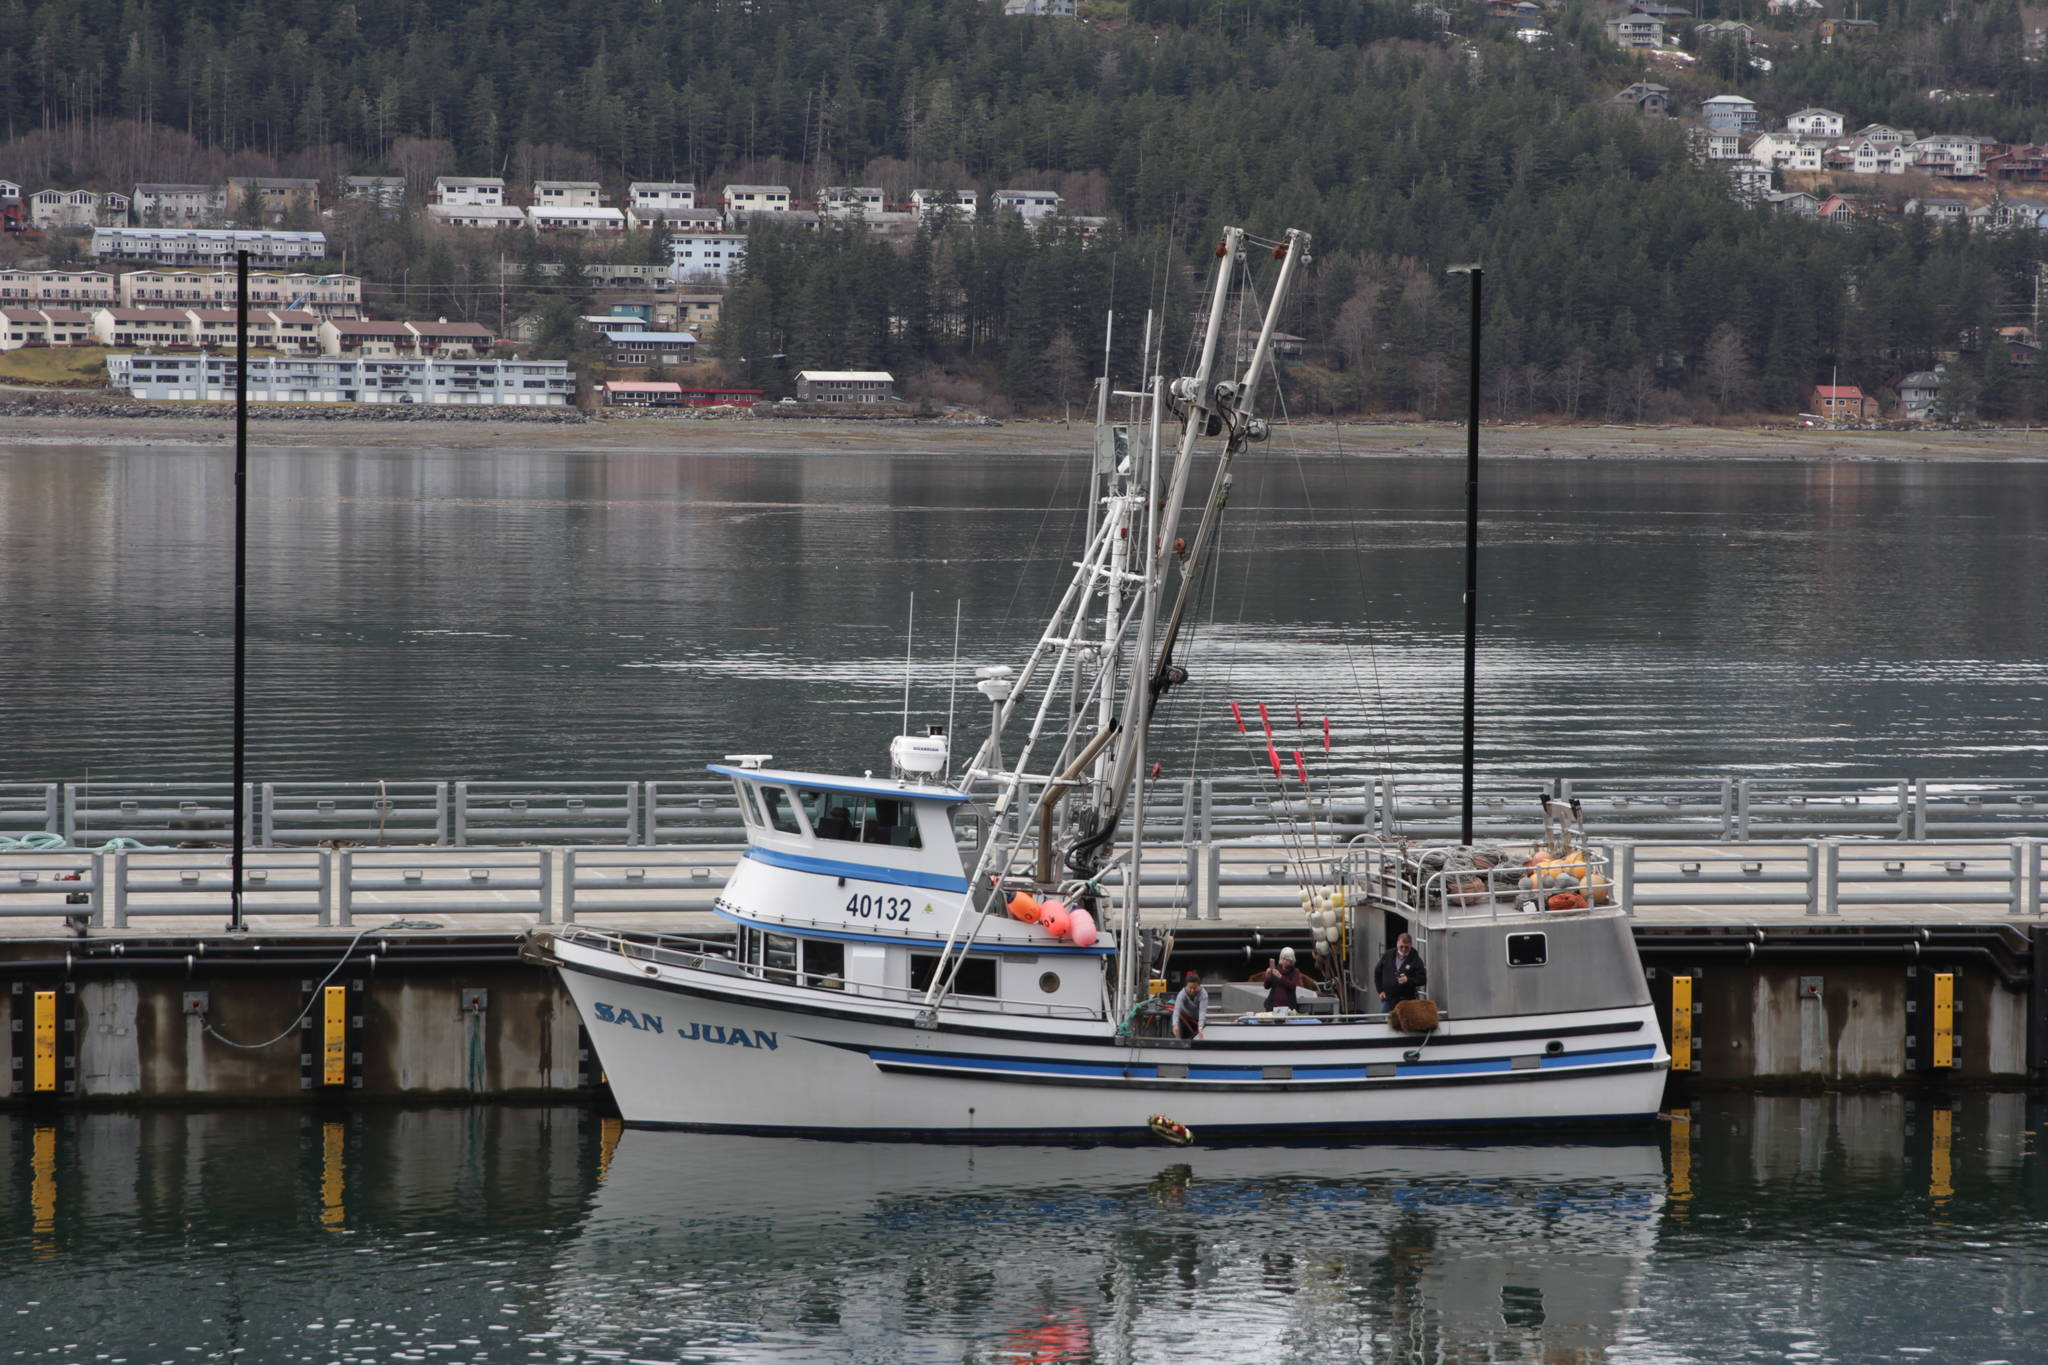 The crew of the fishing vessel San Juan release a memorial wreath into the Gastineau Channel during the 31st annual Blessing of the Fleet and Reading of Names at the Alaska Commercial Fishermen's Memorial in Juneau on May 1, 2021. (Michael S. Lockett / Juneau Empire)